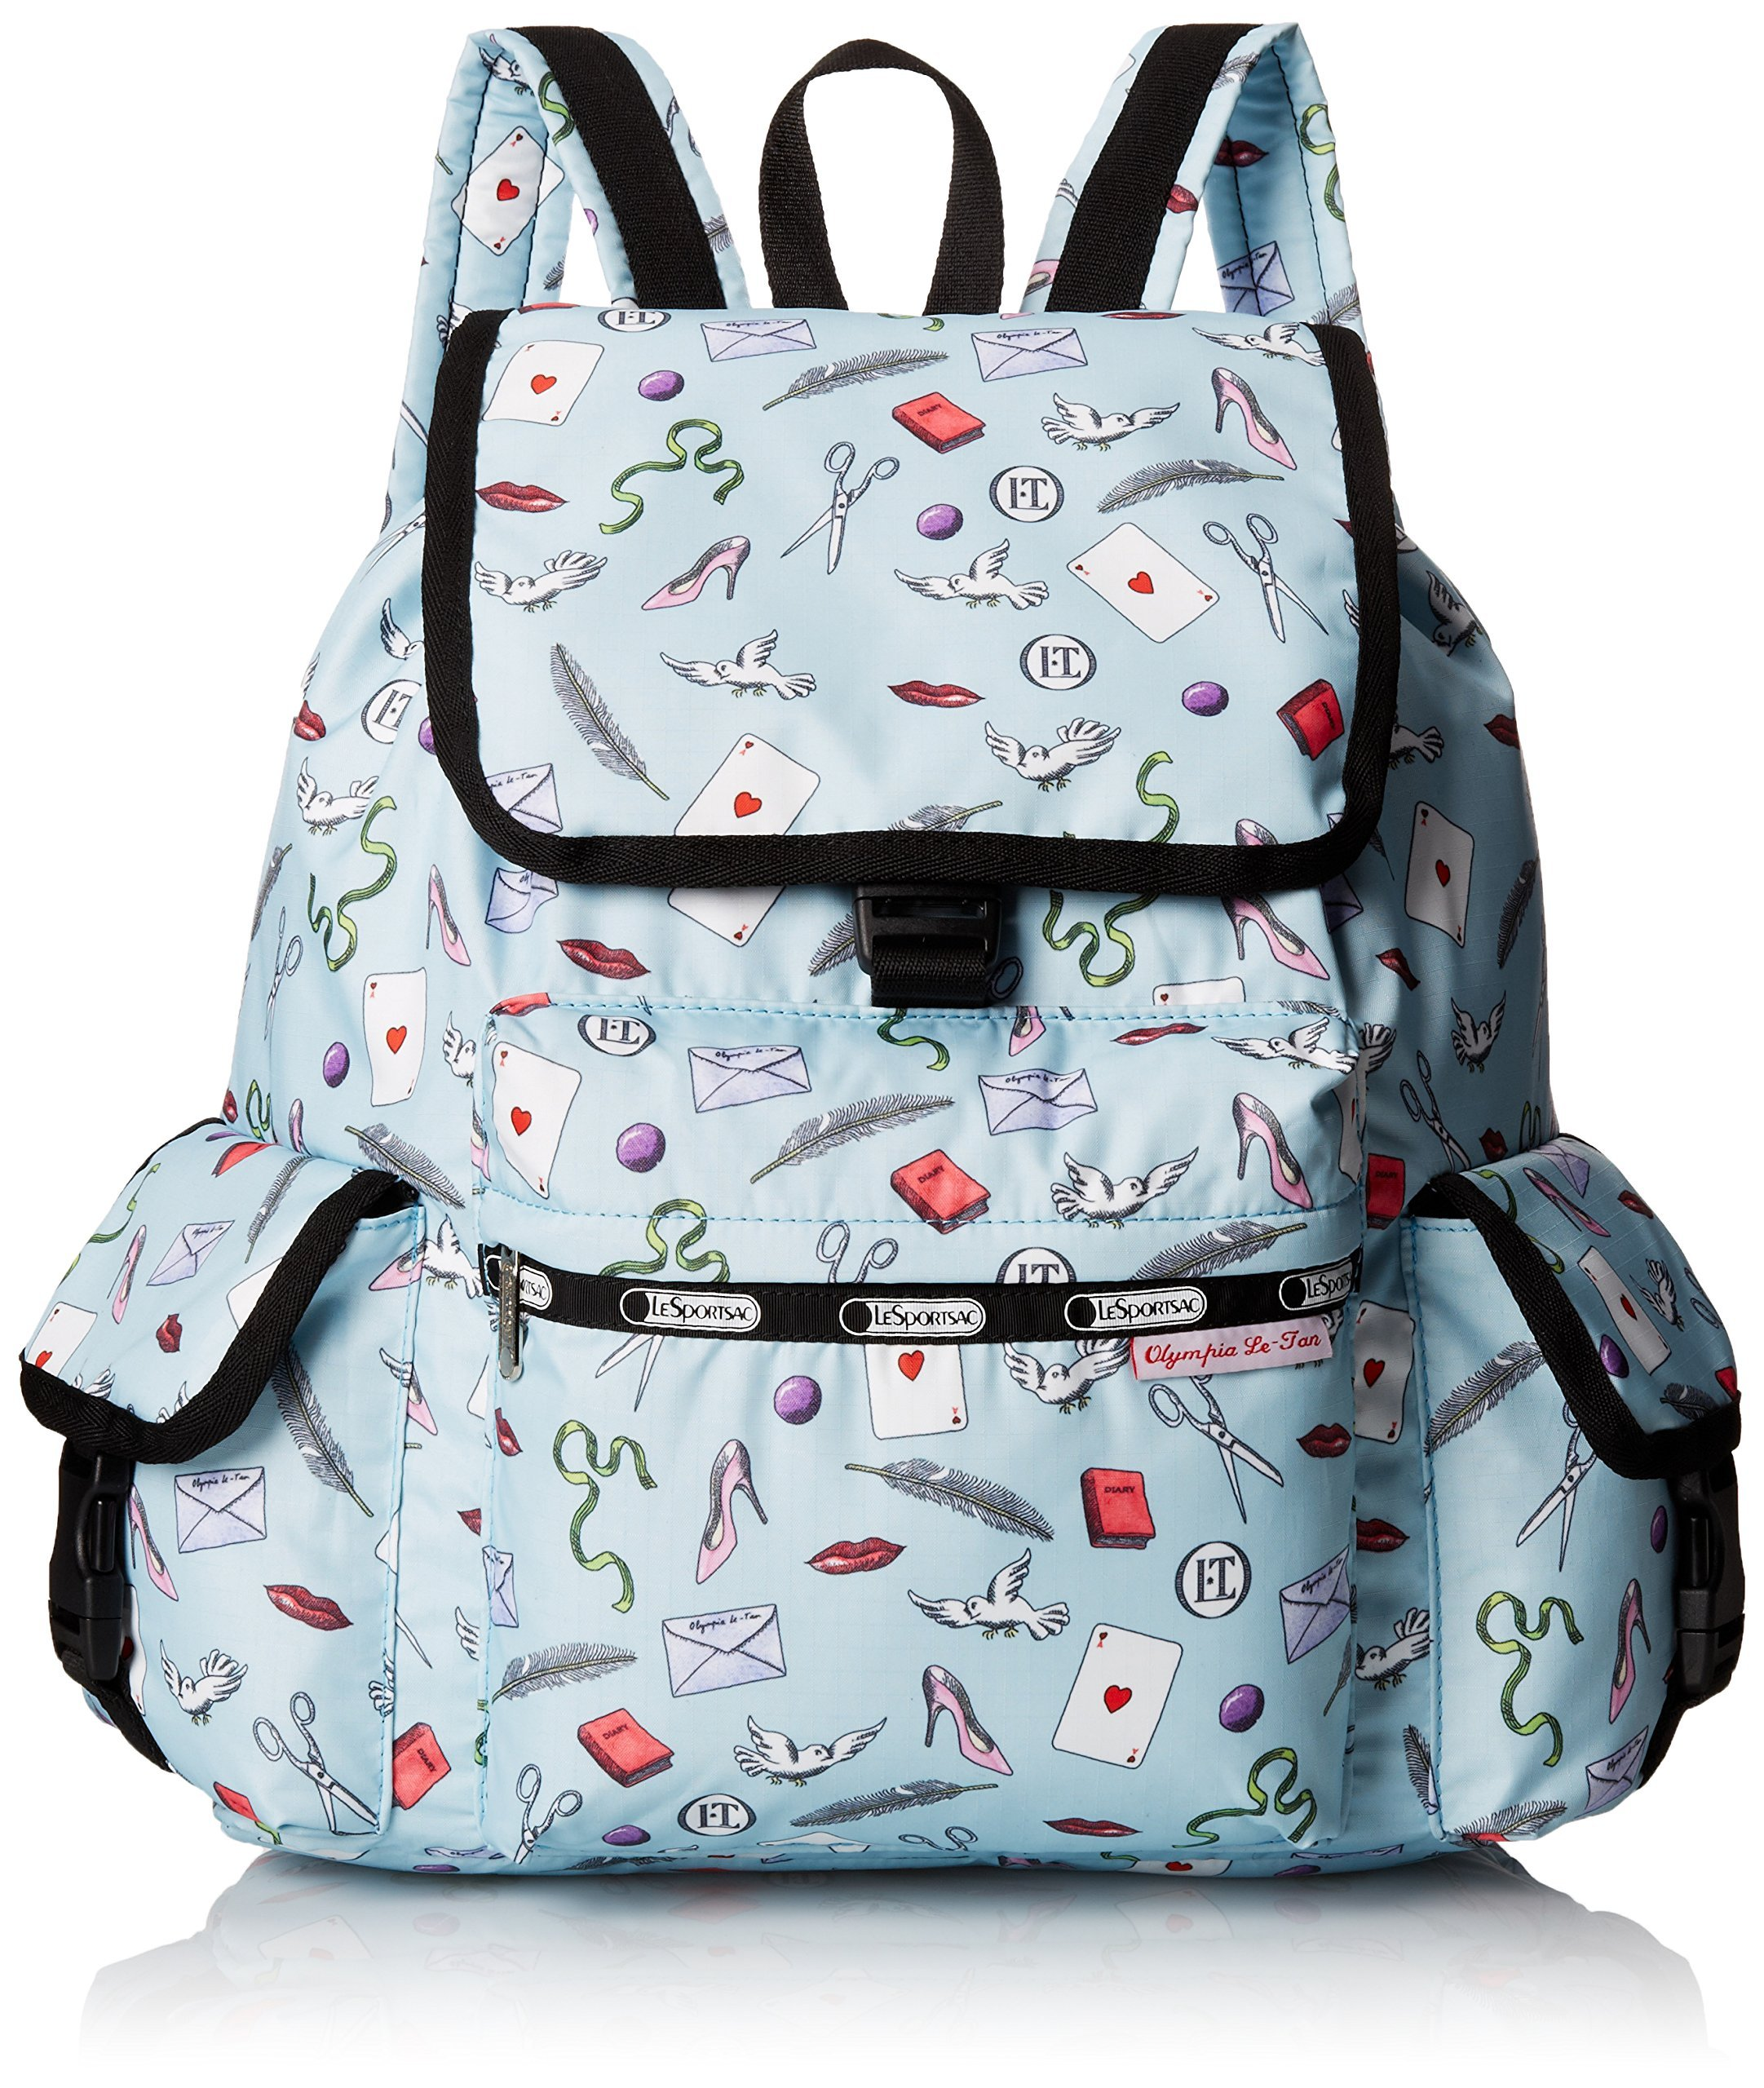 LeSportsac Voyager Backpack, Love Letters Blue, One Size